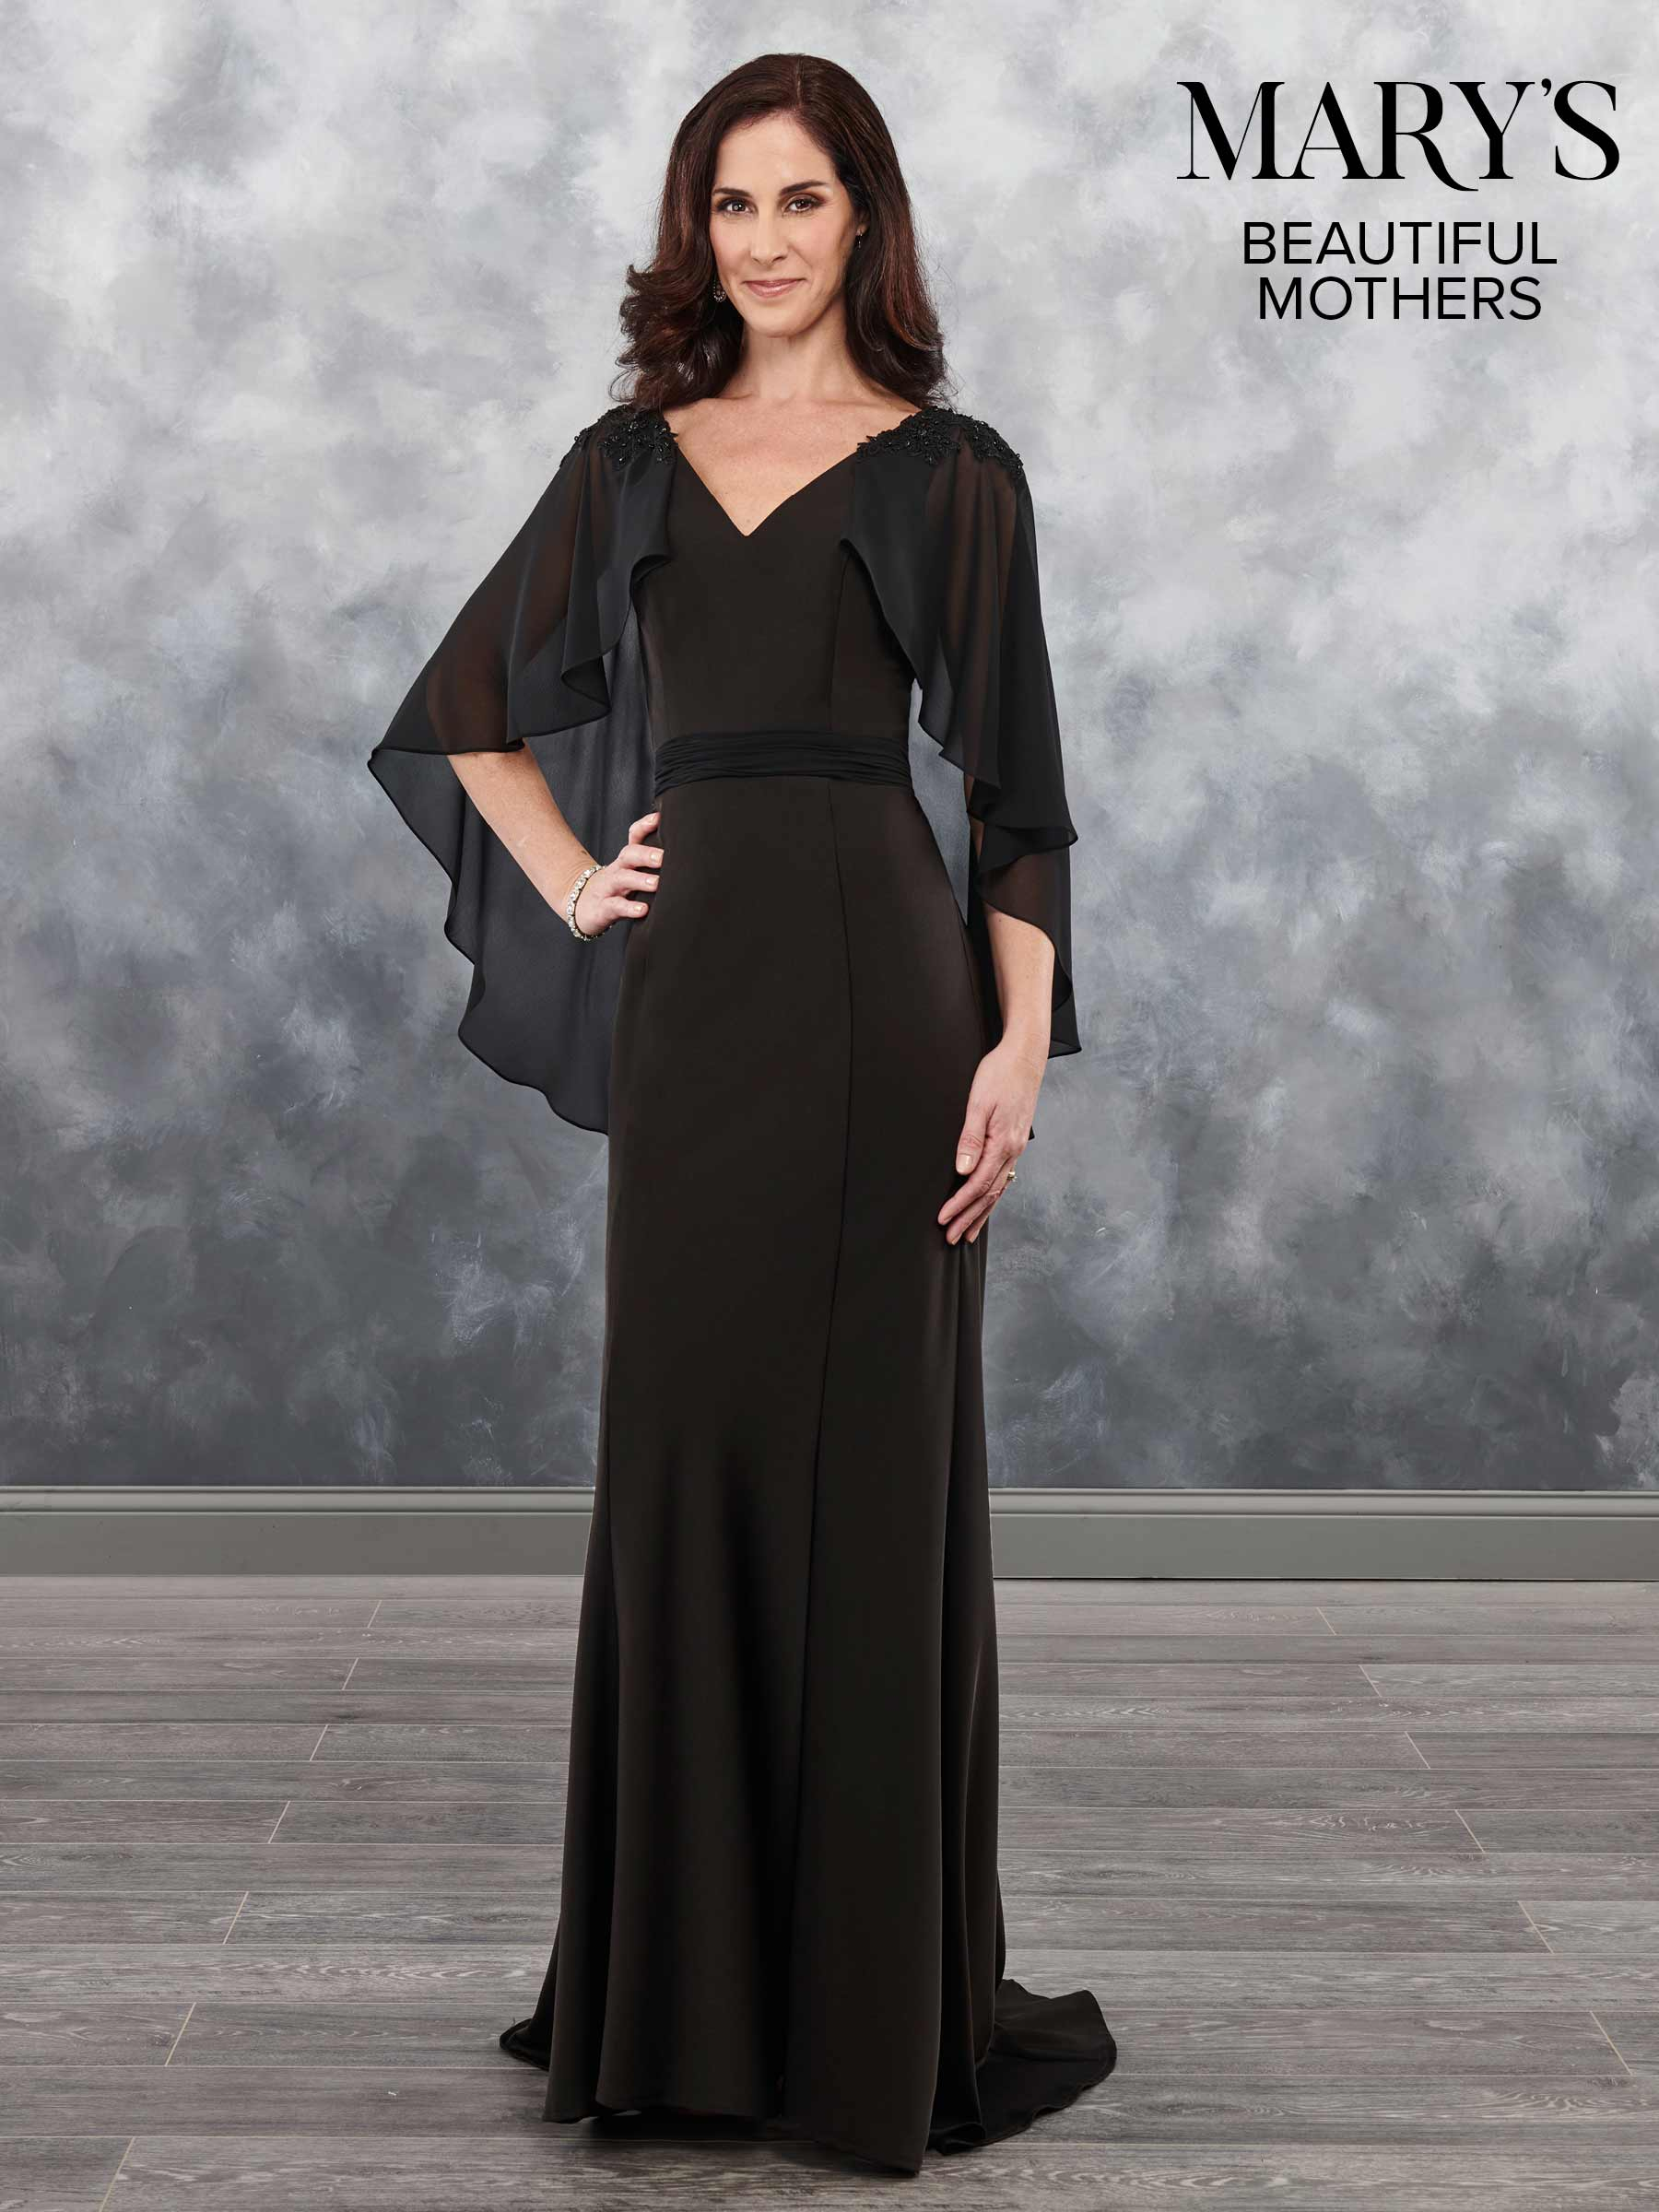 Mother Of The Bride Dresses   Beautiful Mothers   Style - MB8033